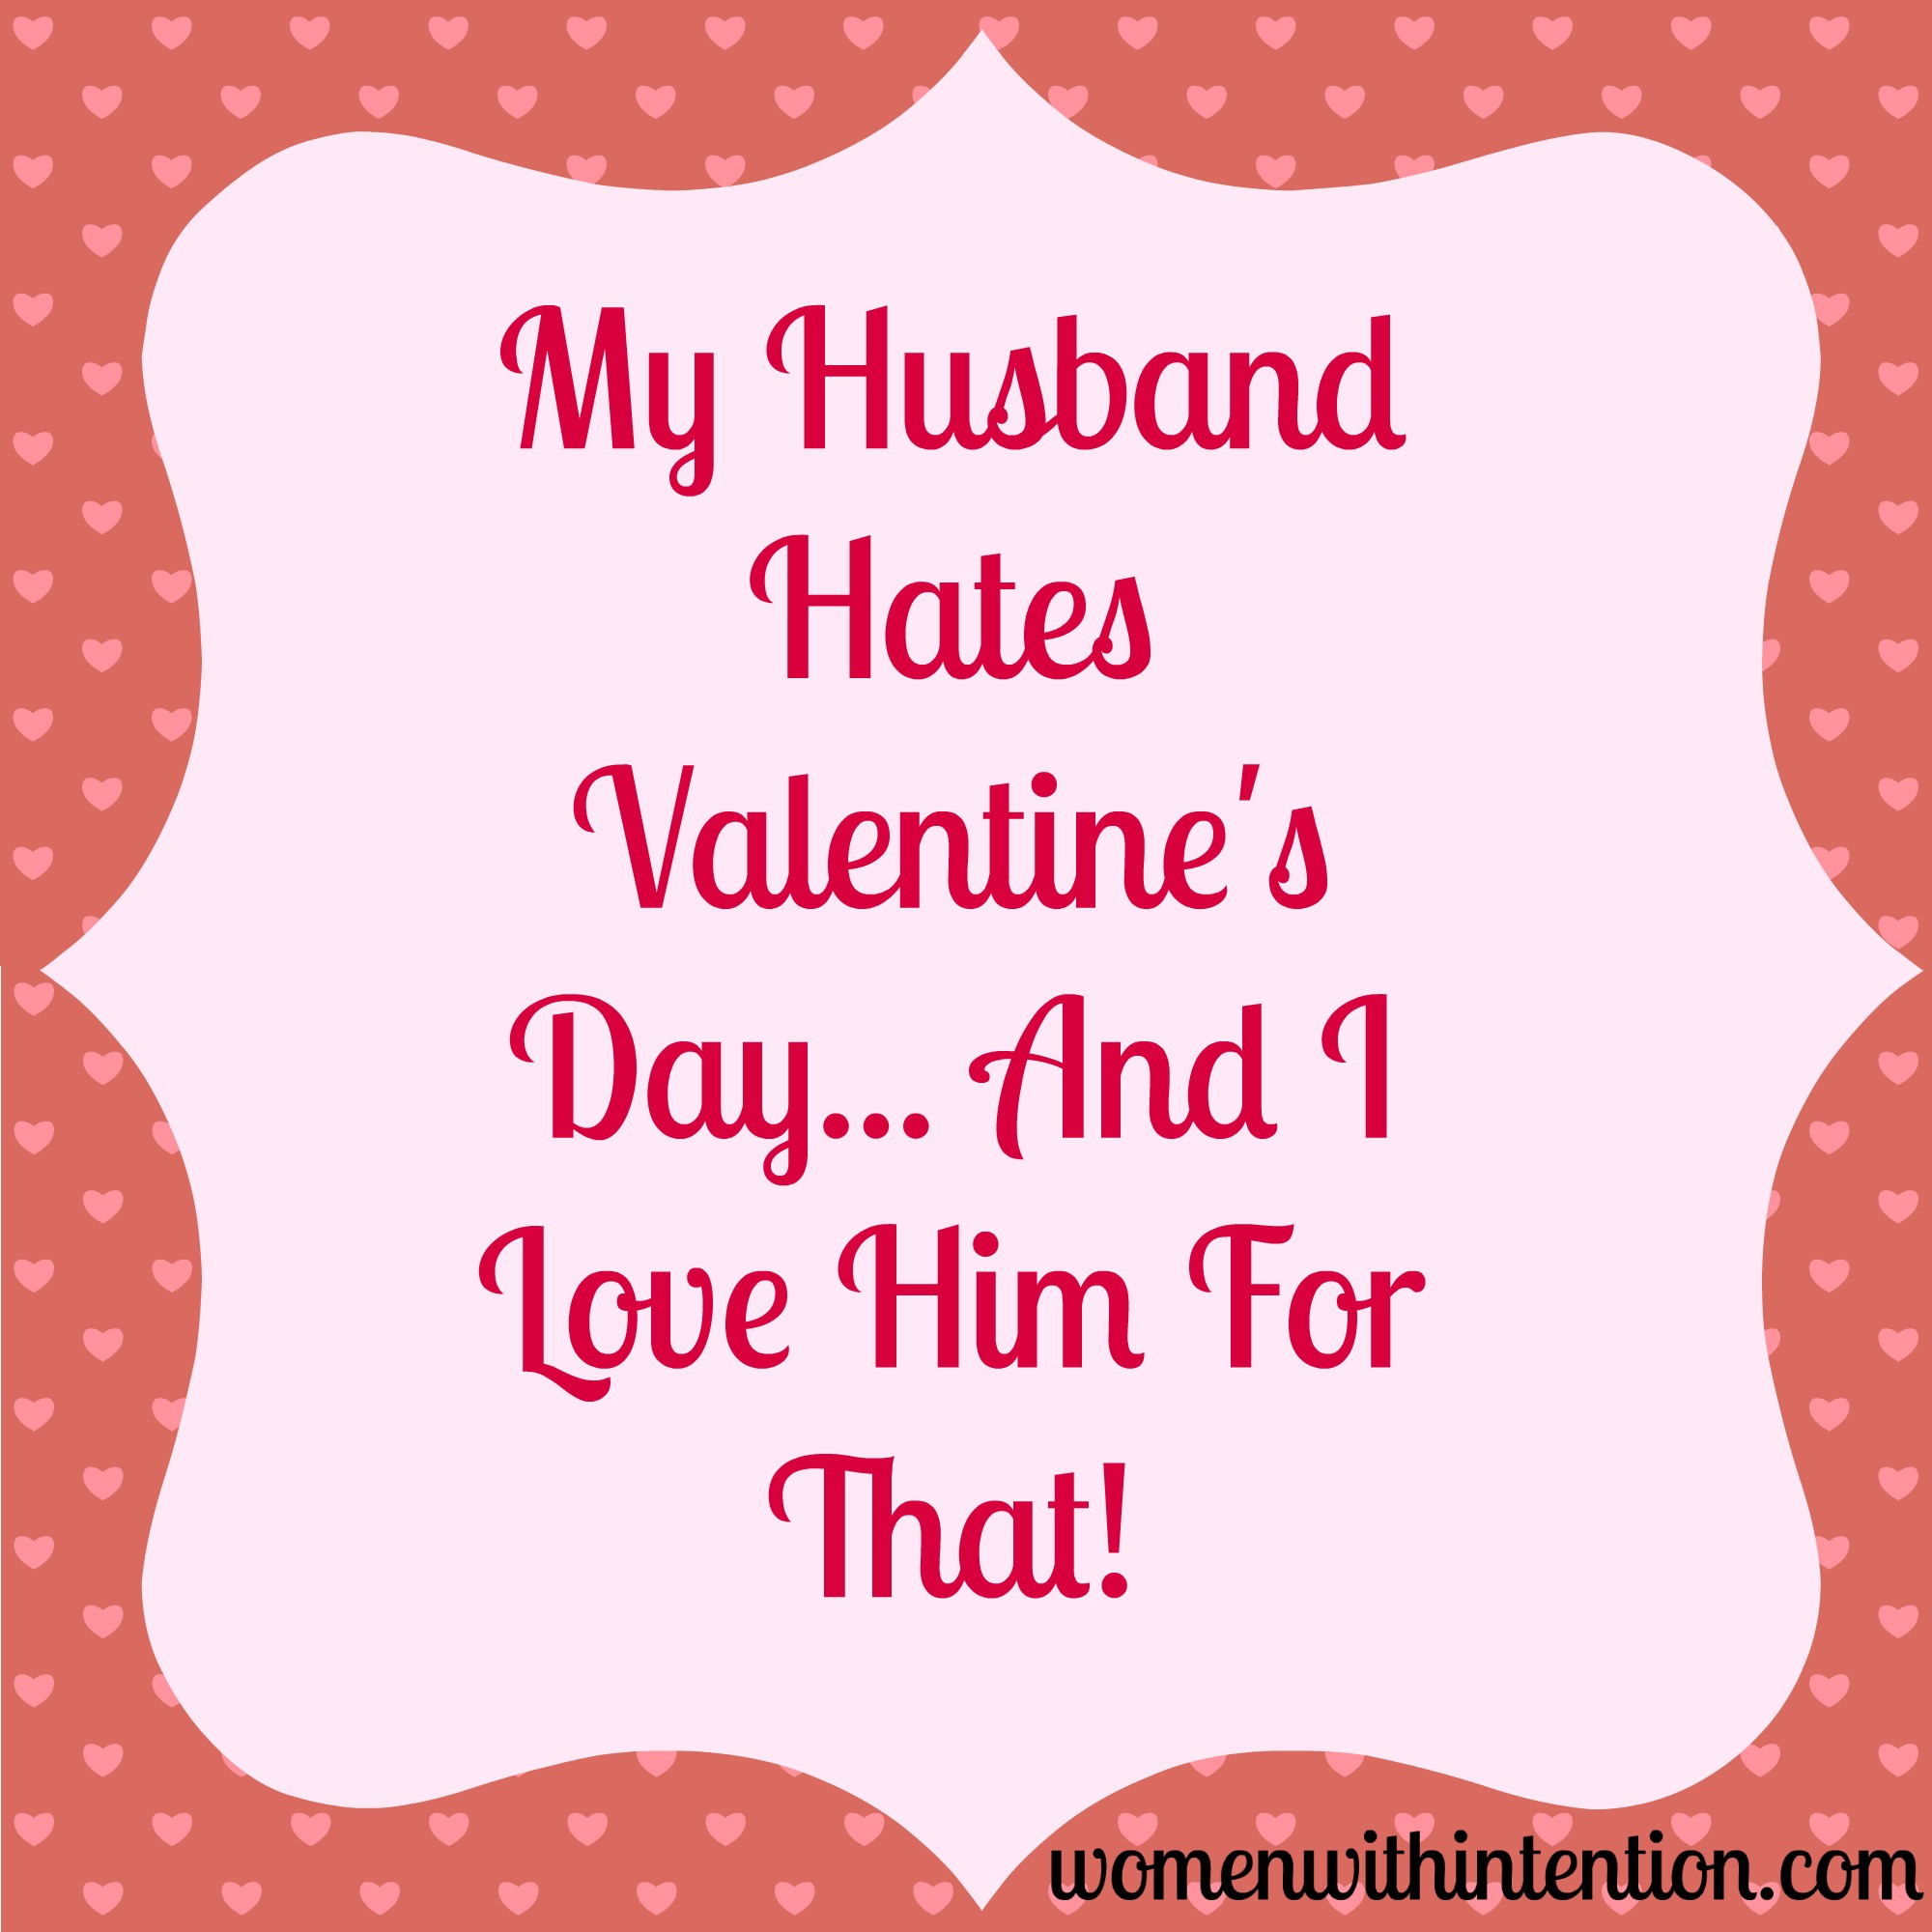 Valentines Day Quotes For Wife: Valentines Quotes For Husband. QuotesGram